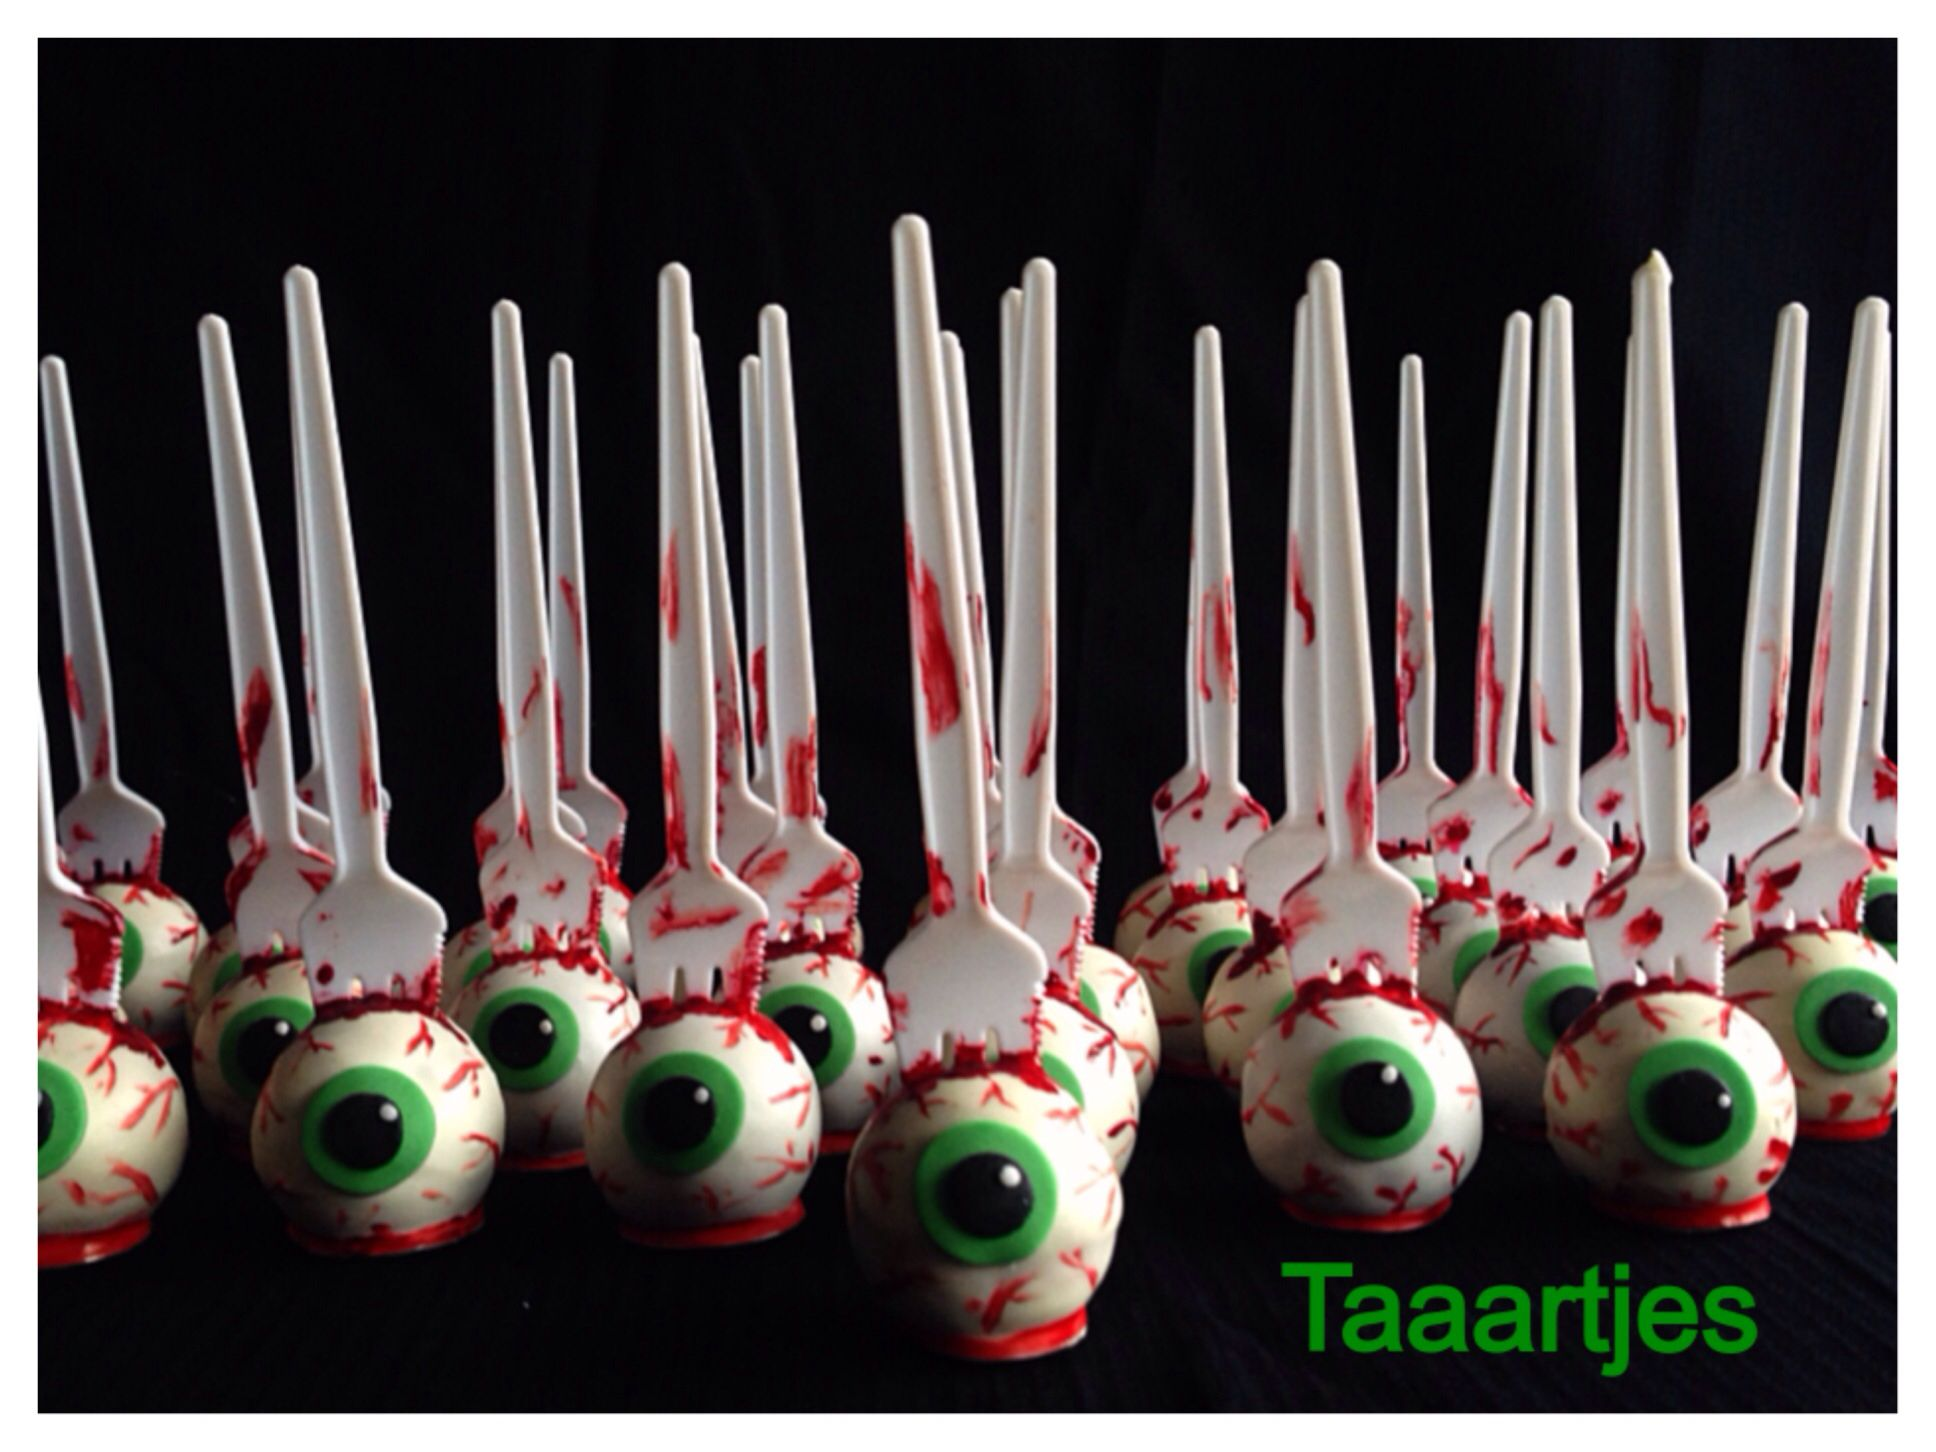 Halloween Eyeball Cakepops | Taaartjes - 1459.6KB